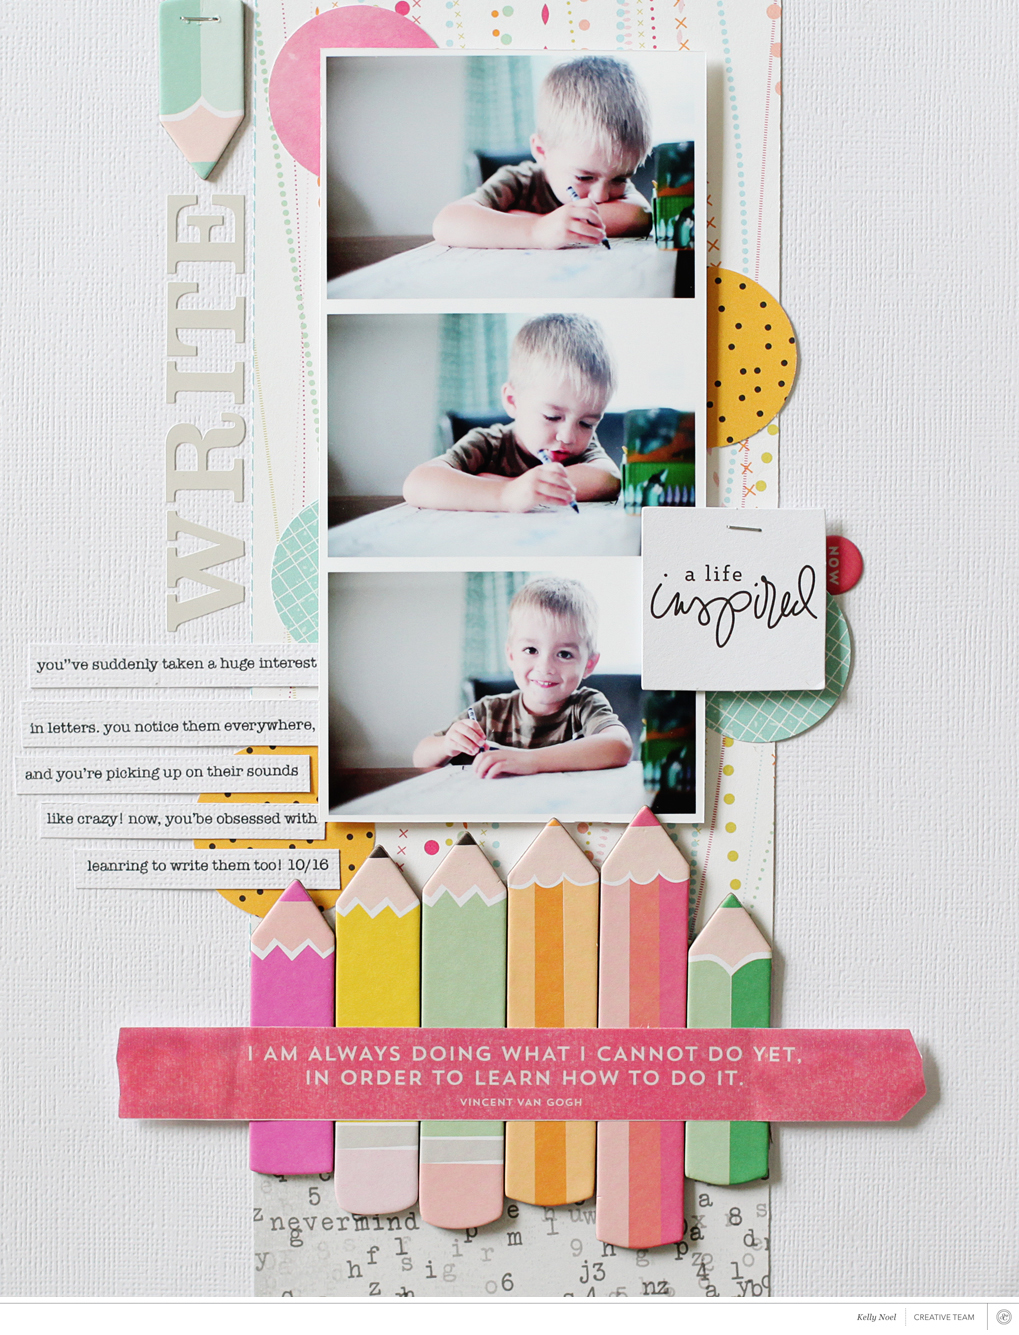 How to scrapbook a holiday - I M A Family Literal Scrapper So I Searched Through My Photos For The Last Year For Something That Would Work With The Pencil Theme